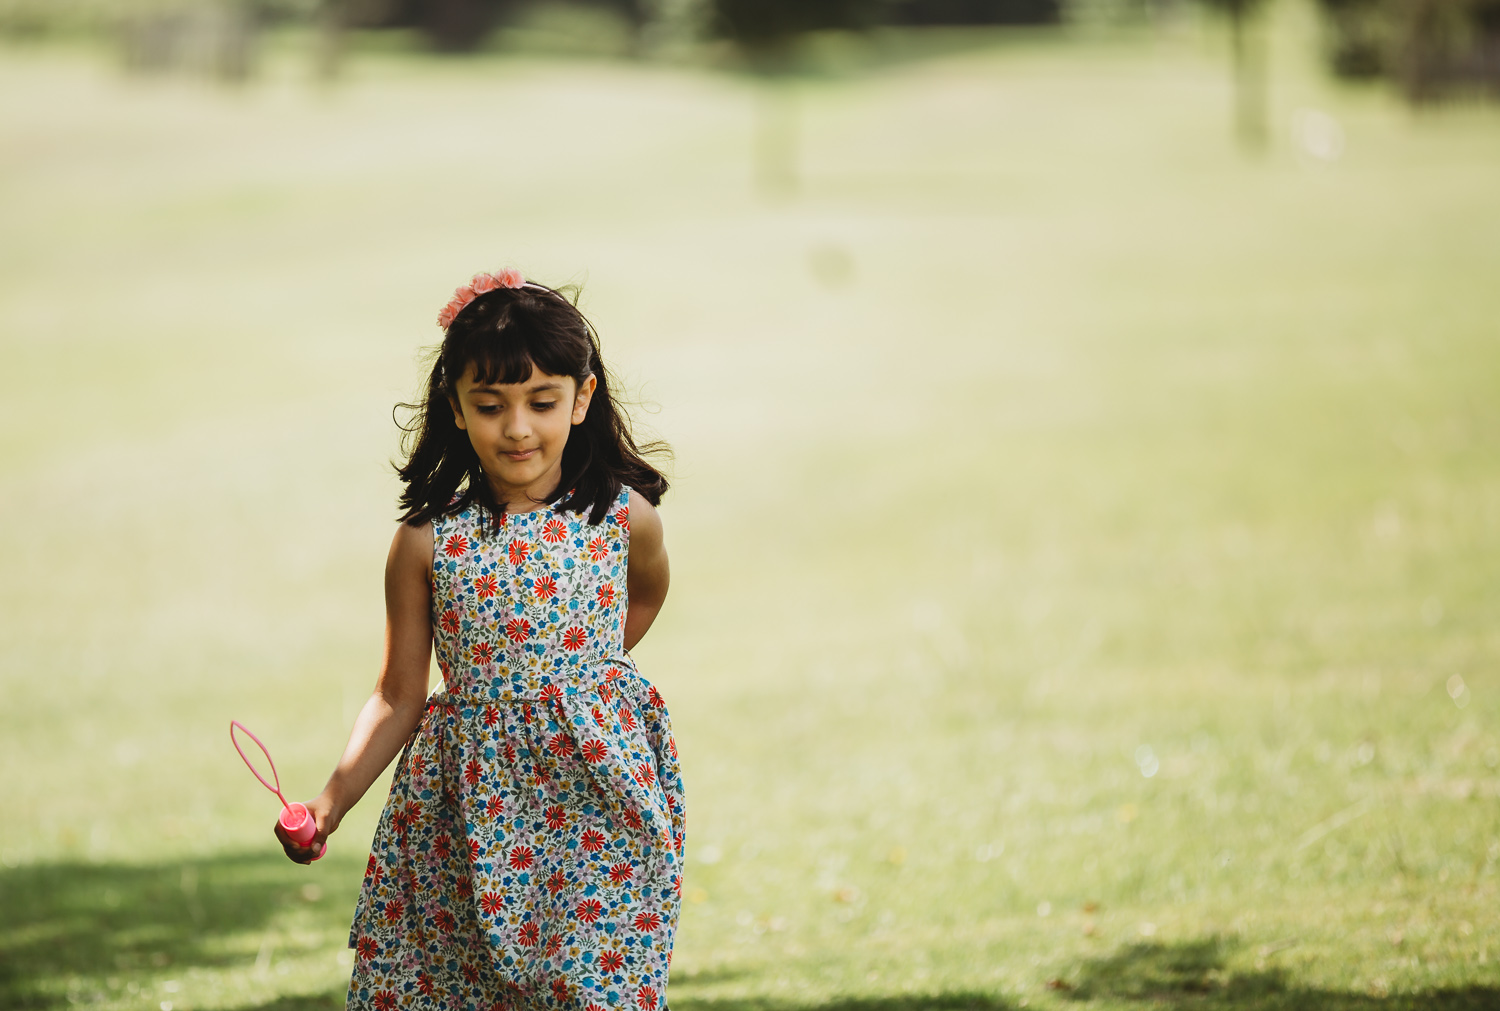 little girl of 4 walking confidently in a park